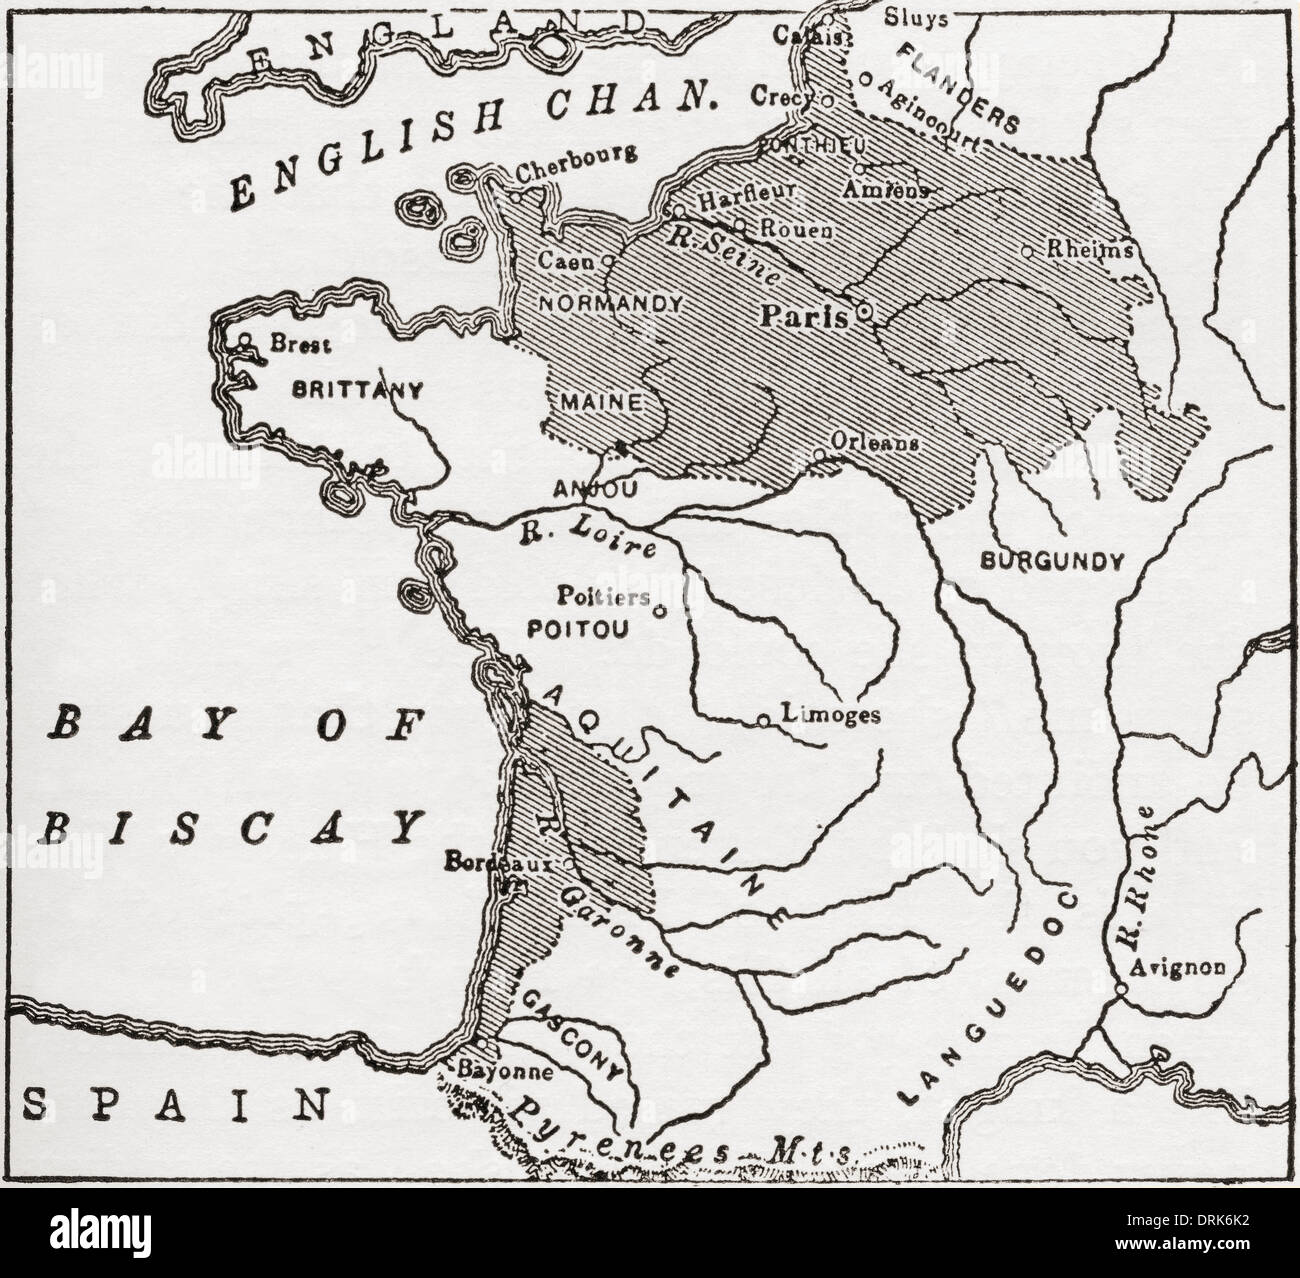 Map showing French territory held by the English when Jeanne D'Arc appeared, 1429. - Stock Image